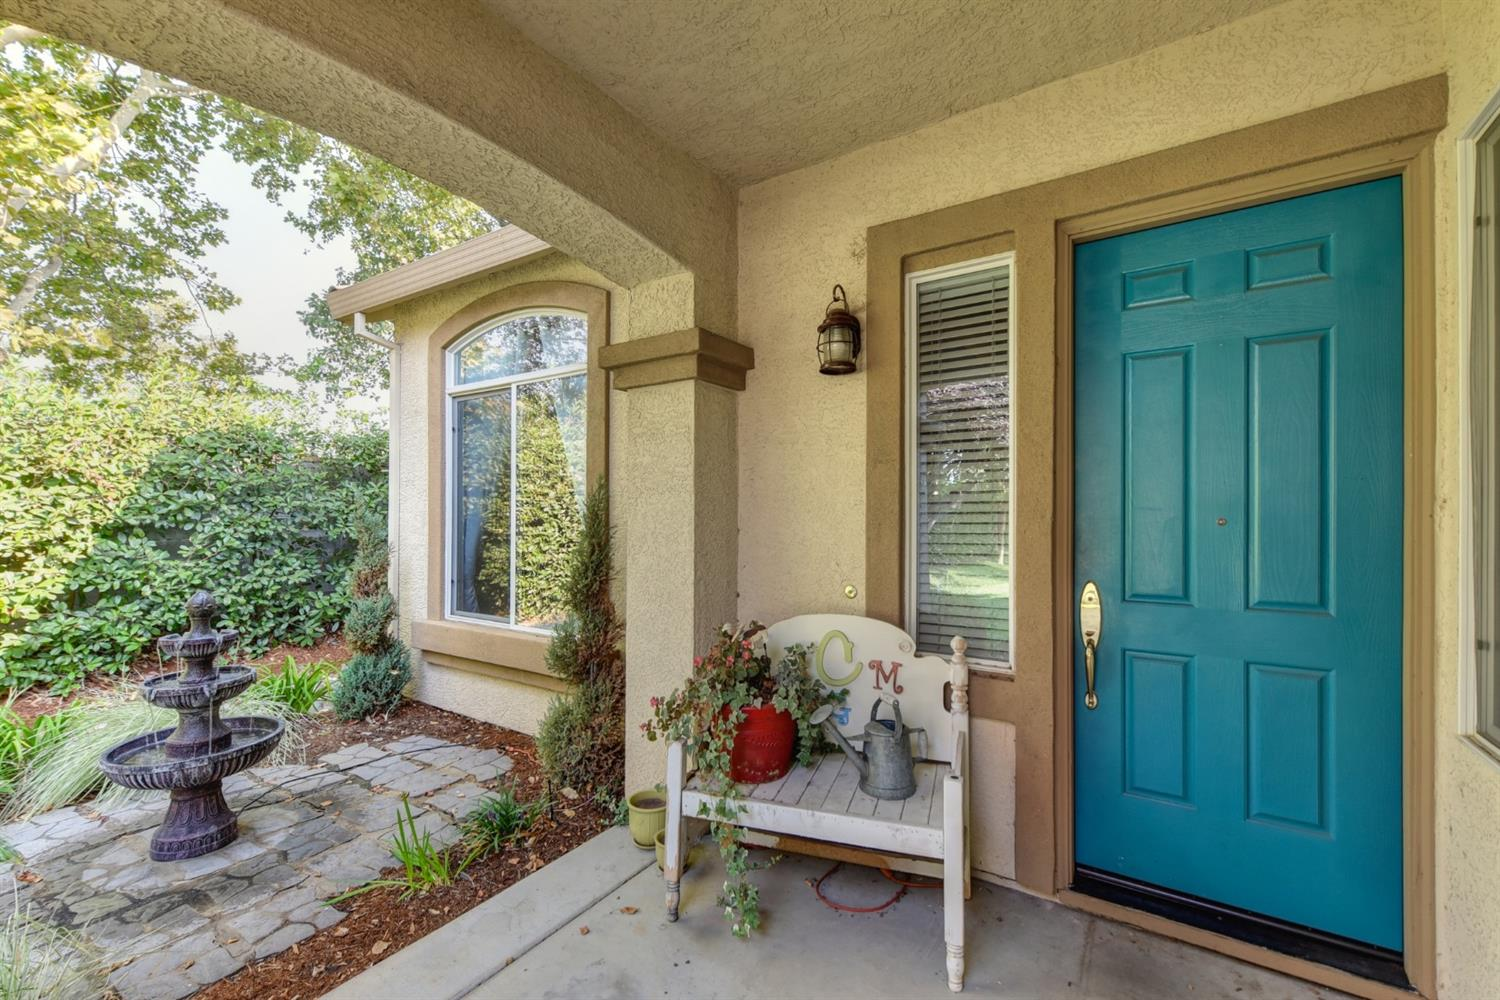 Photo 2 for Listing #221120681